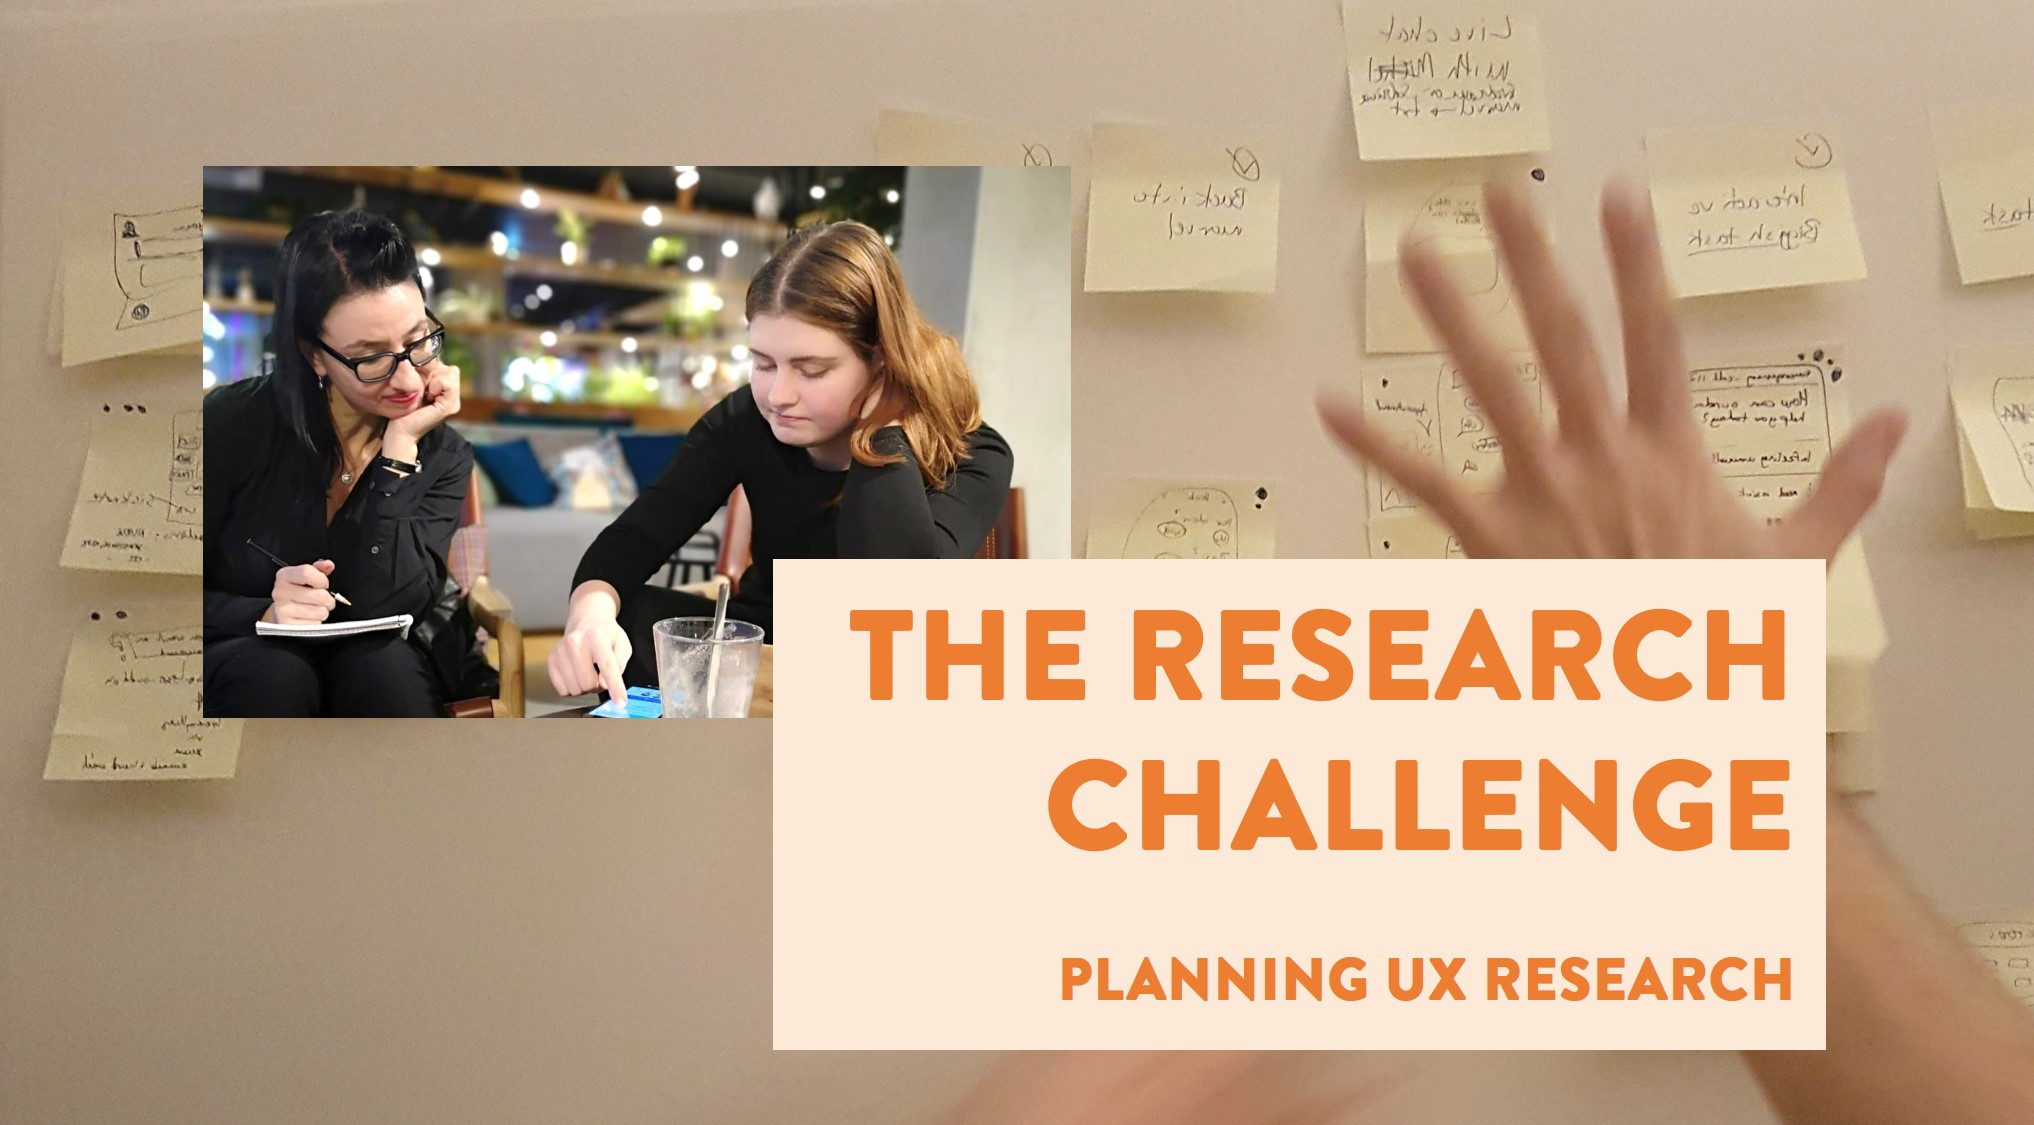 The Research Challenge Workshop